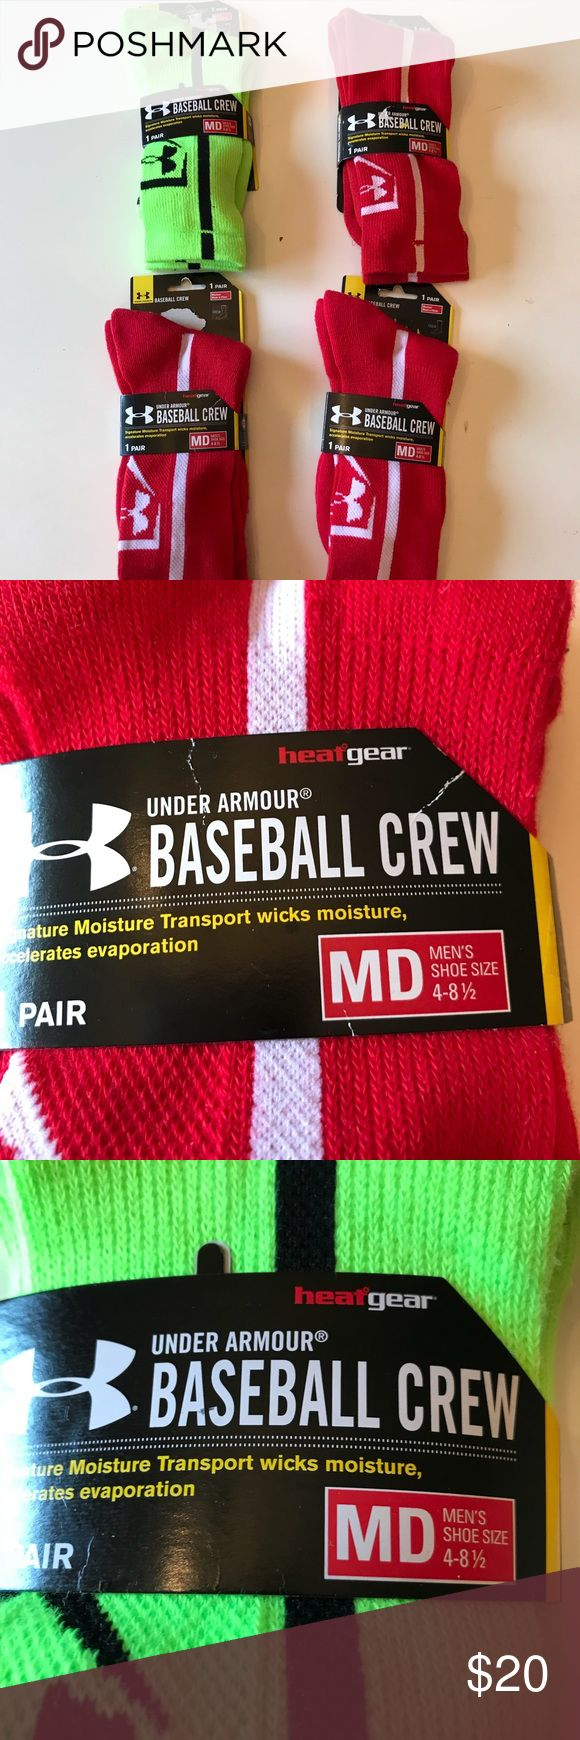 Baseball socks lot fits big boys /men's 4-8 1/2 My boys no longer need them so time to get rid of these   Big Boys or men's shoes sz 4-8.5   $6 for 1 $12 for 2 $15 for 3 All for $20  Please see all photos for sizing Under Armour Accessories Socks & Tights